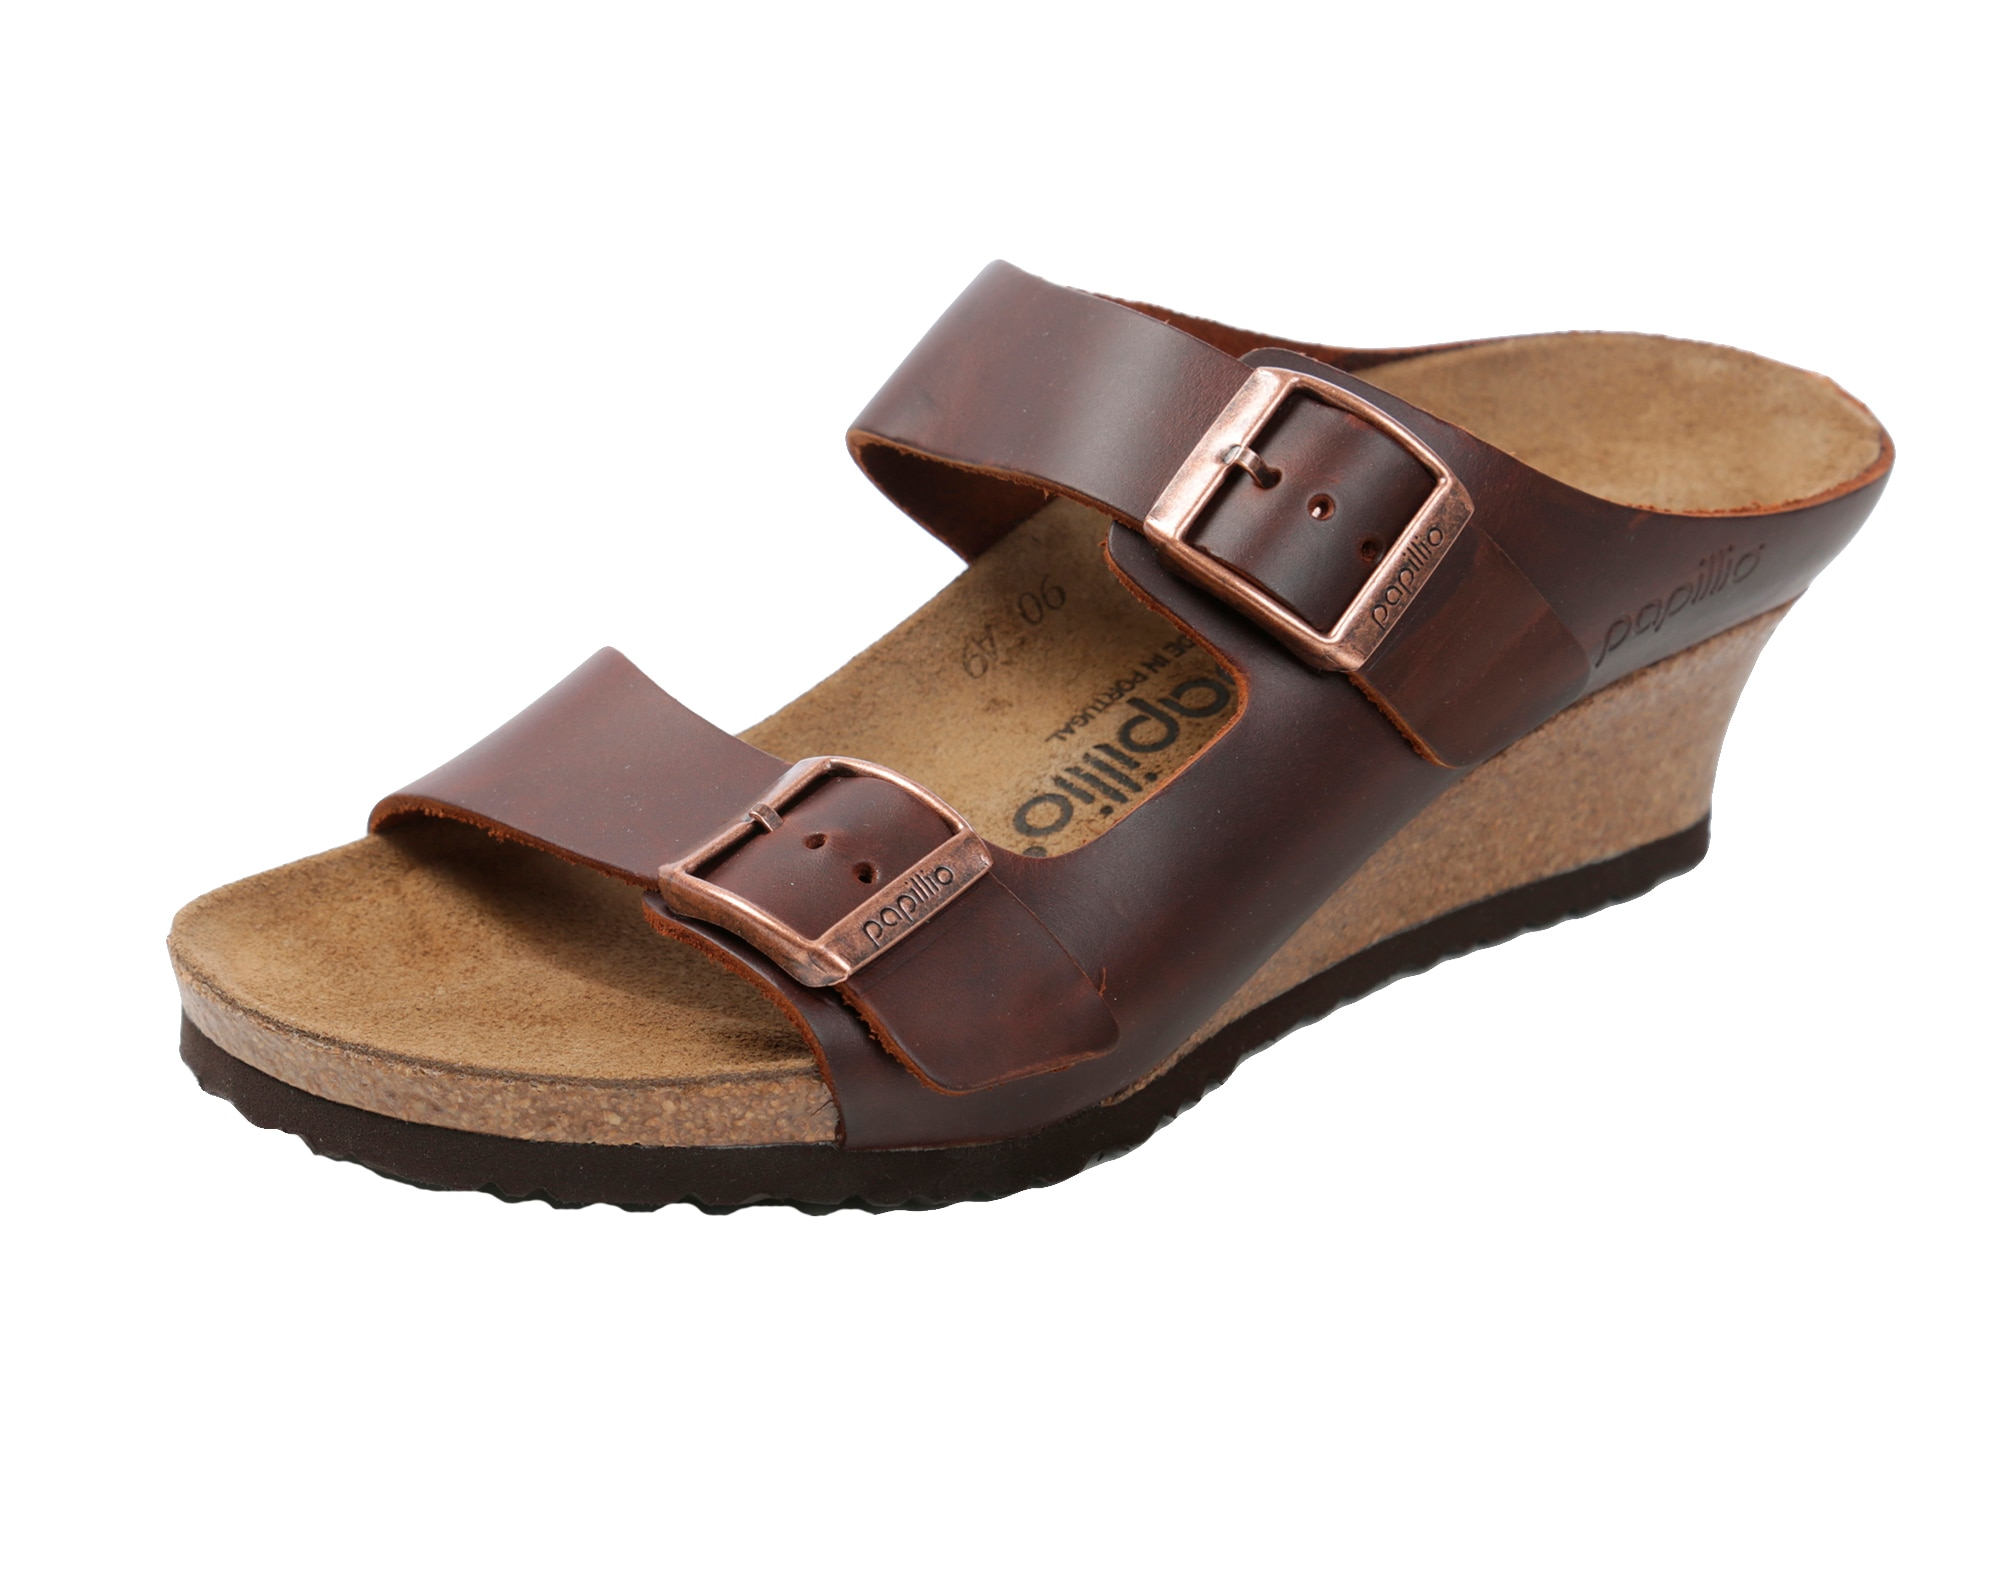 Buy Birkenstock Papillio Emina Wedge Sandal - Shoes & Handbags - Women's  Shoes - Sandals - Online Shopping for Canadians